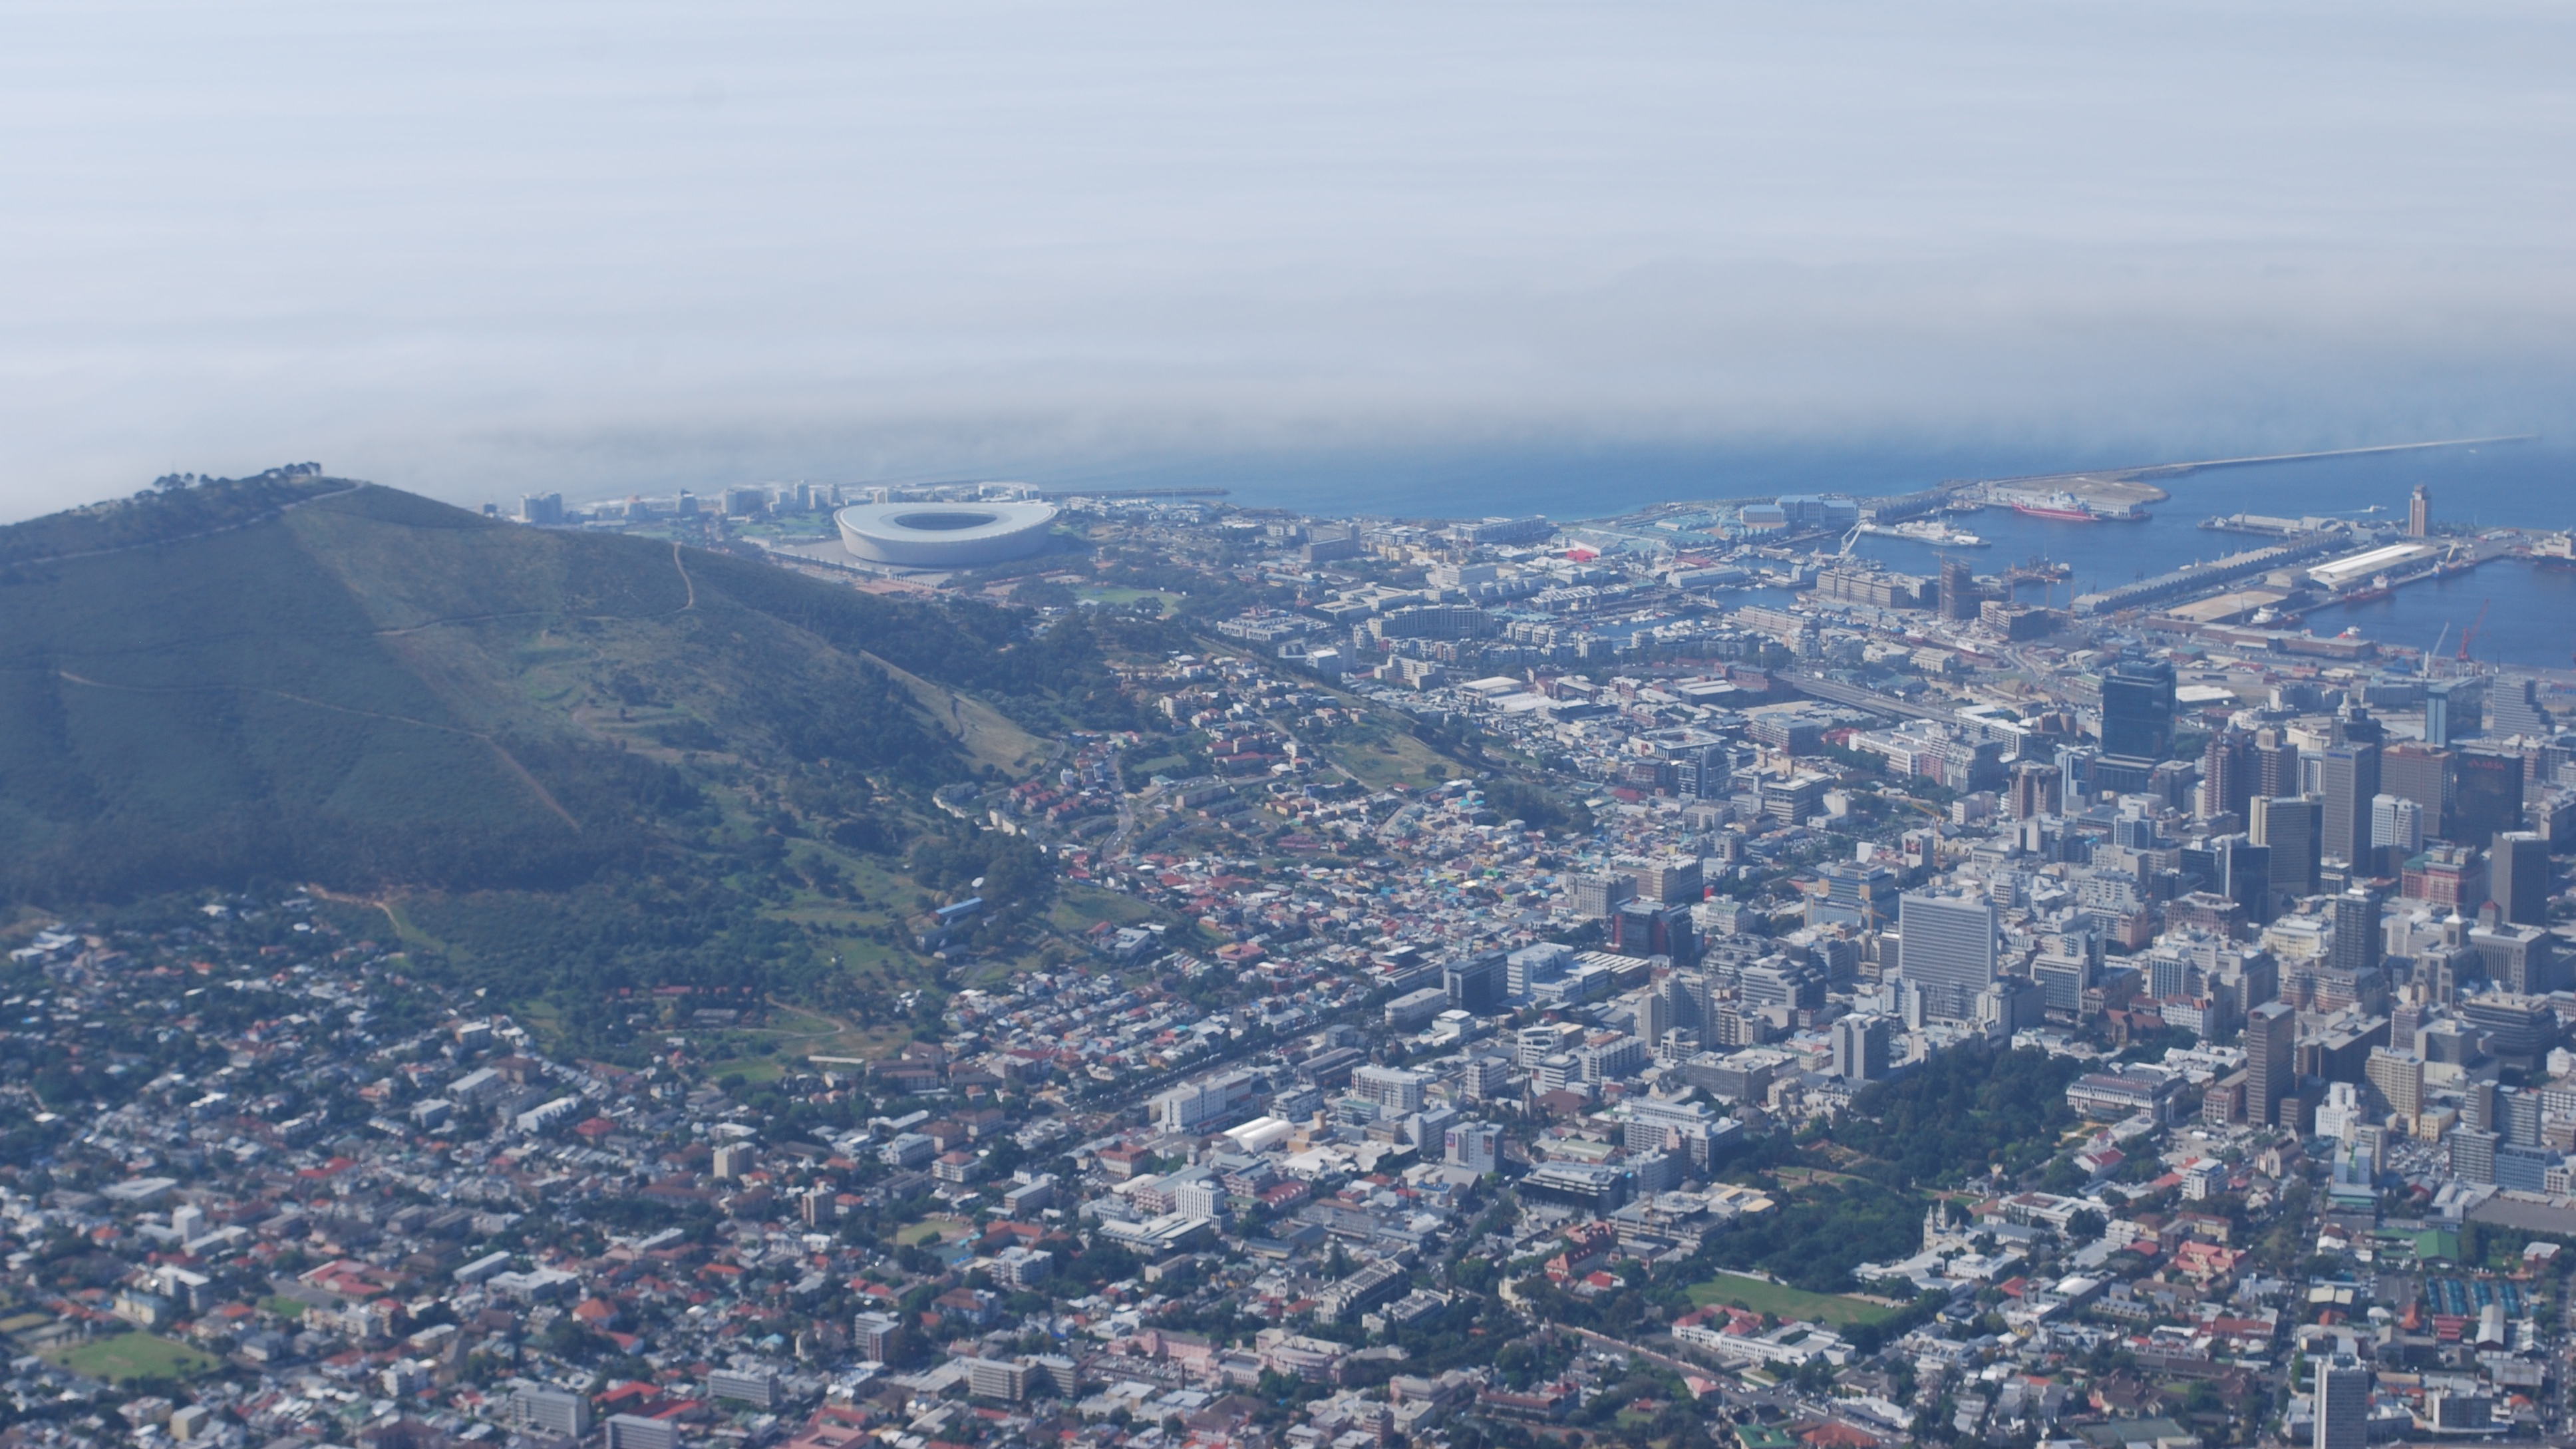 Travelog: Cape Town, South Africa (Days 4 & 5)